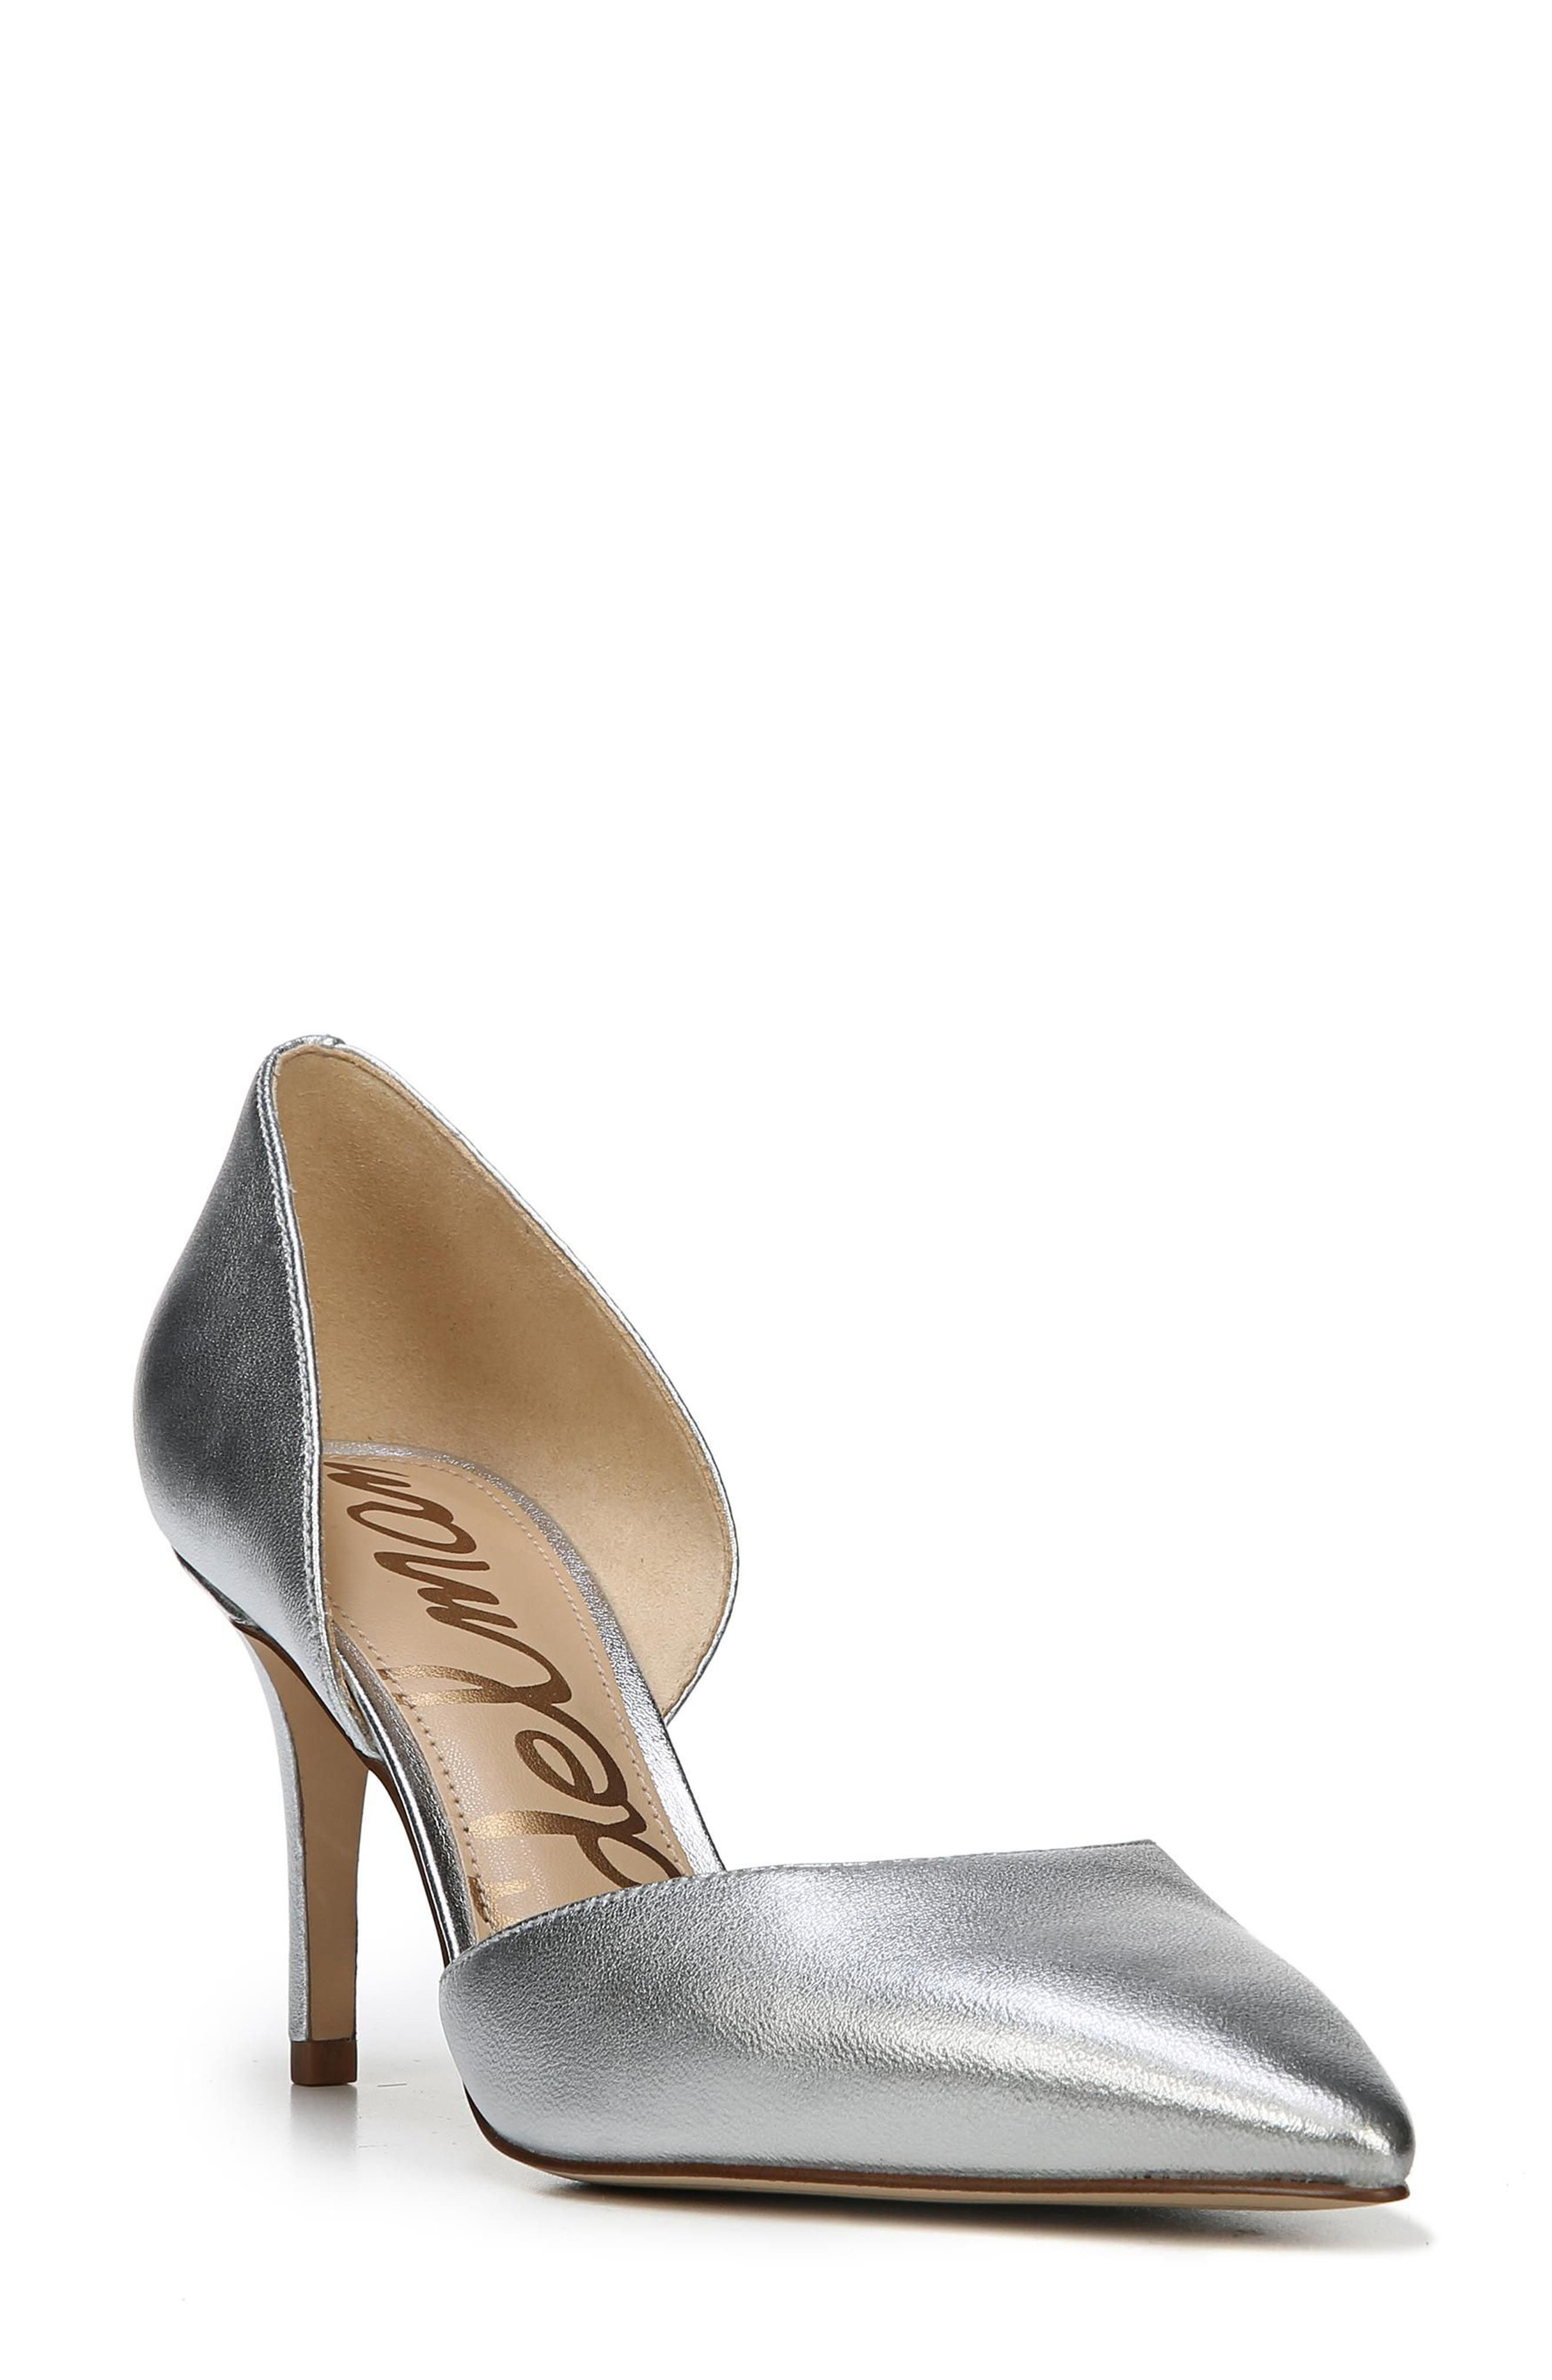 'Telsa' d'Orsay Pointy Toe Pump,                         Main,                         color, 040